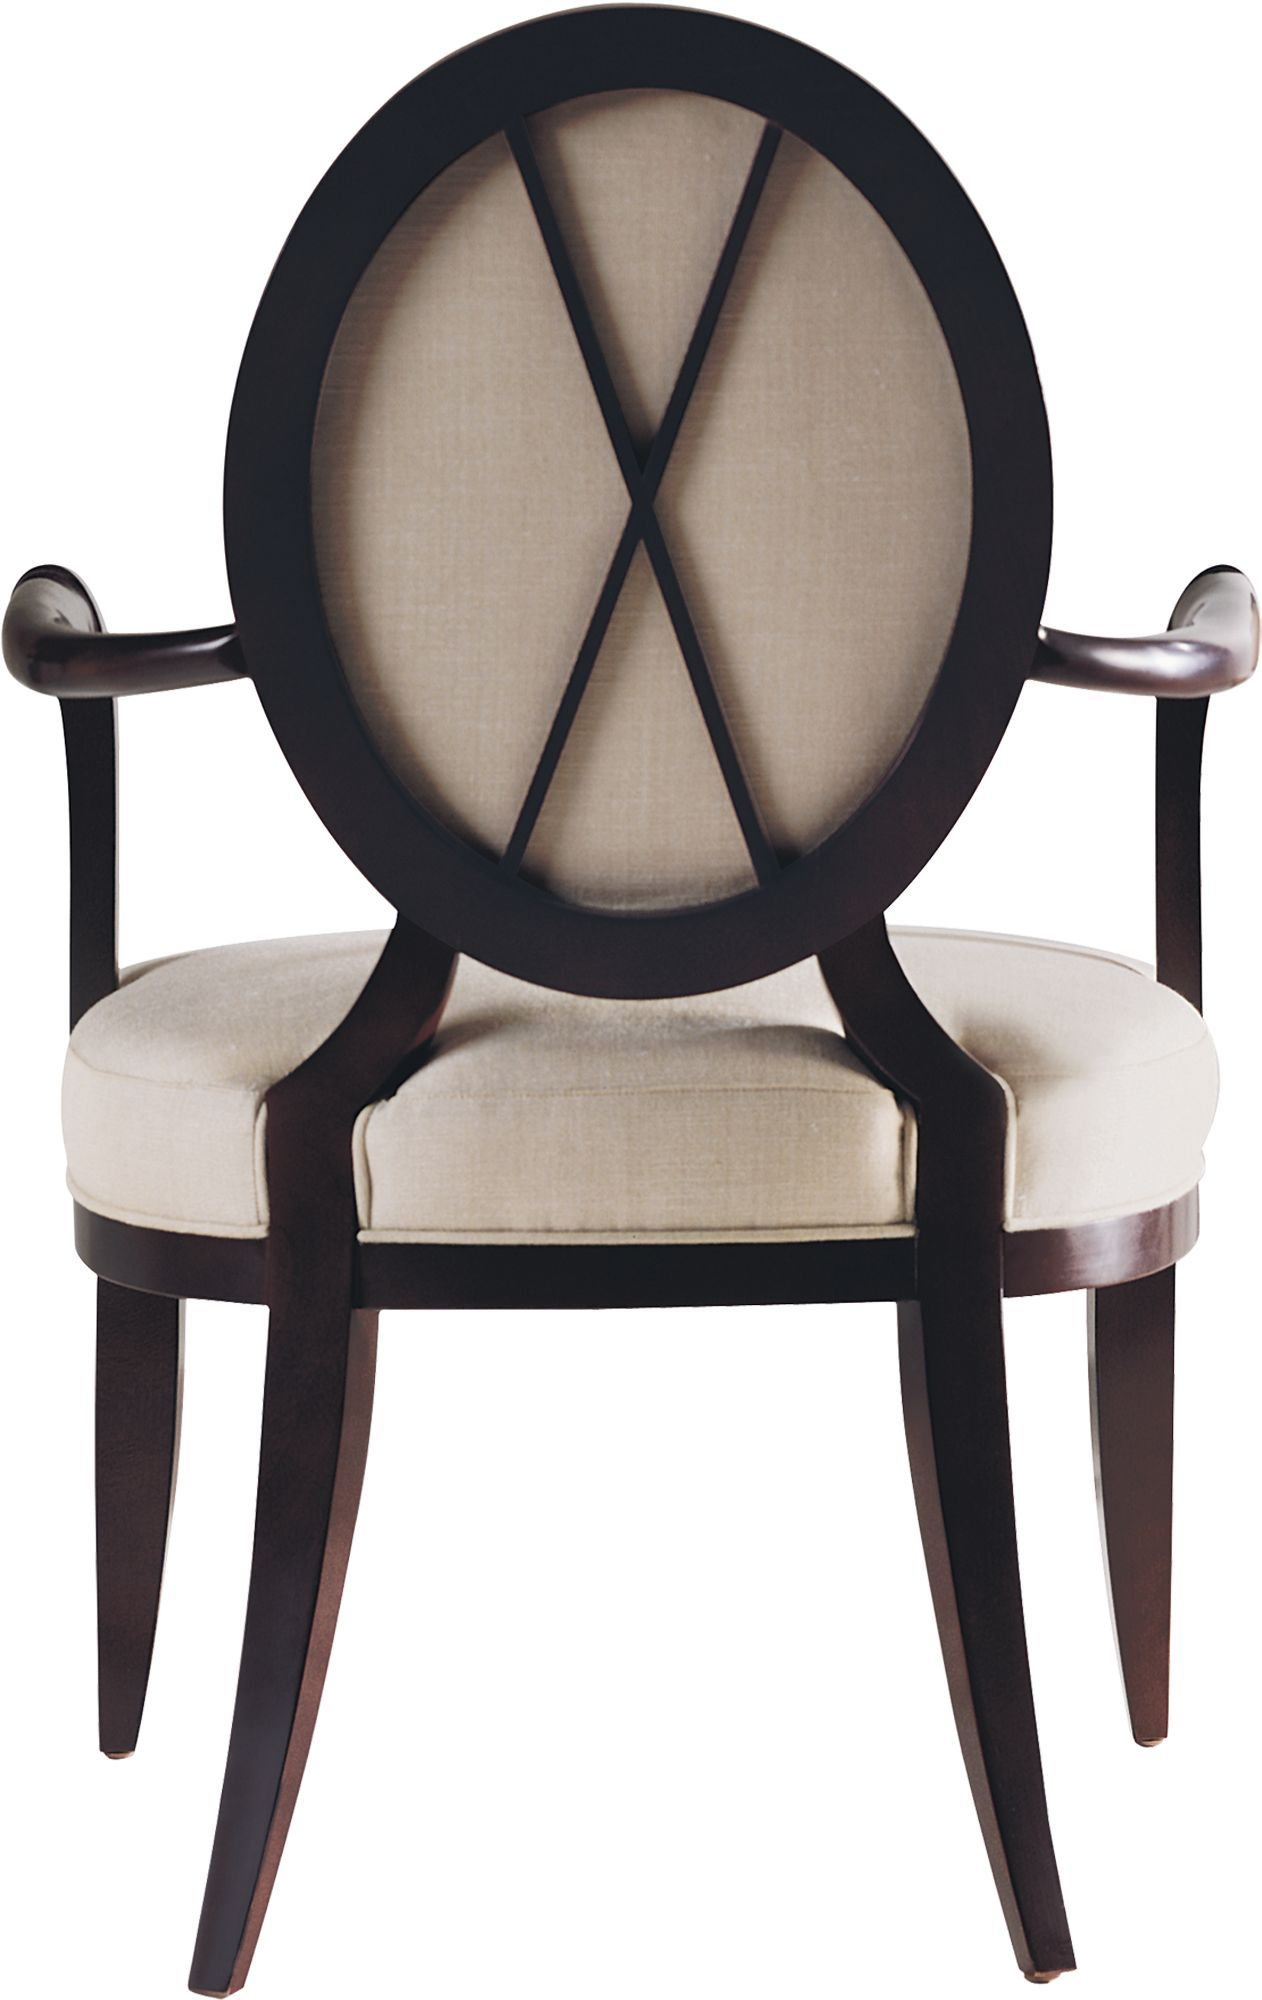 Shop For Baker Oval X Back Dining Arm Chair, And Other Dining Room Chairs  At Hickory Furniture Mart In Hickory, NC. Bearing The Signature Barbara  Barry ...